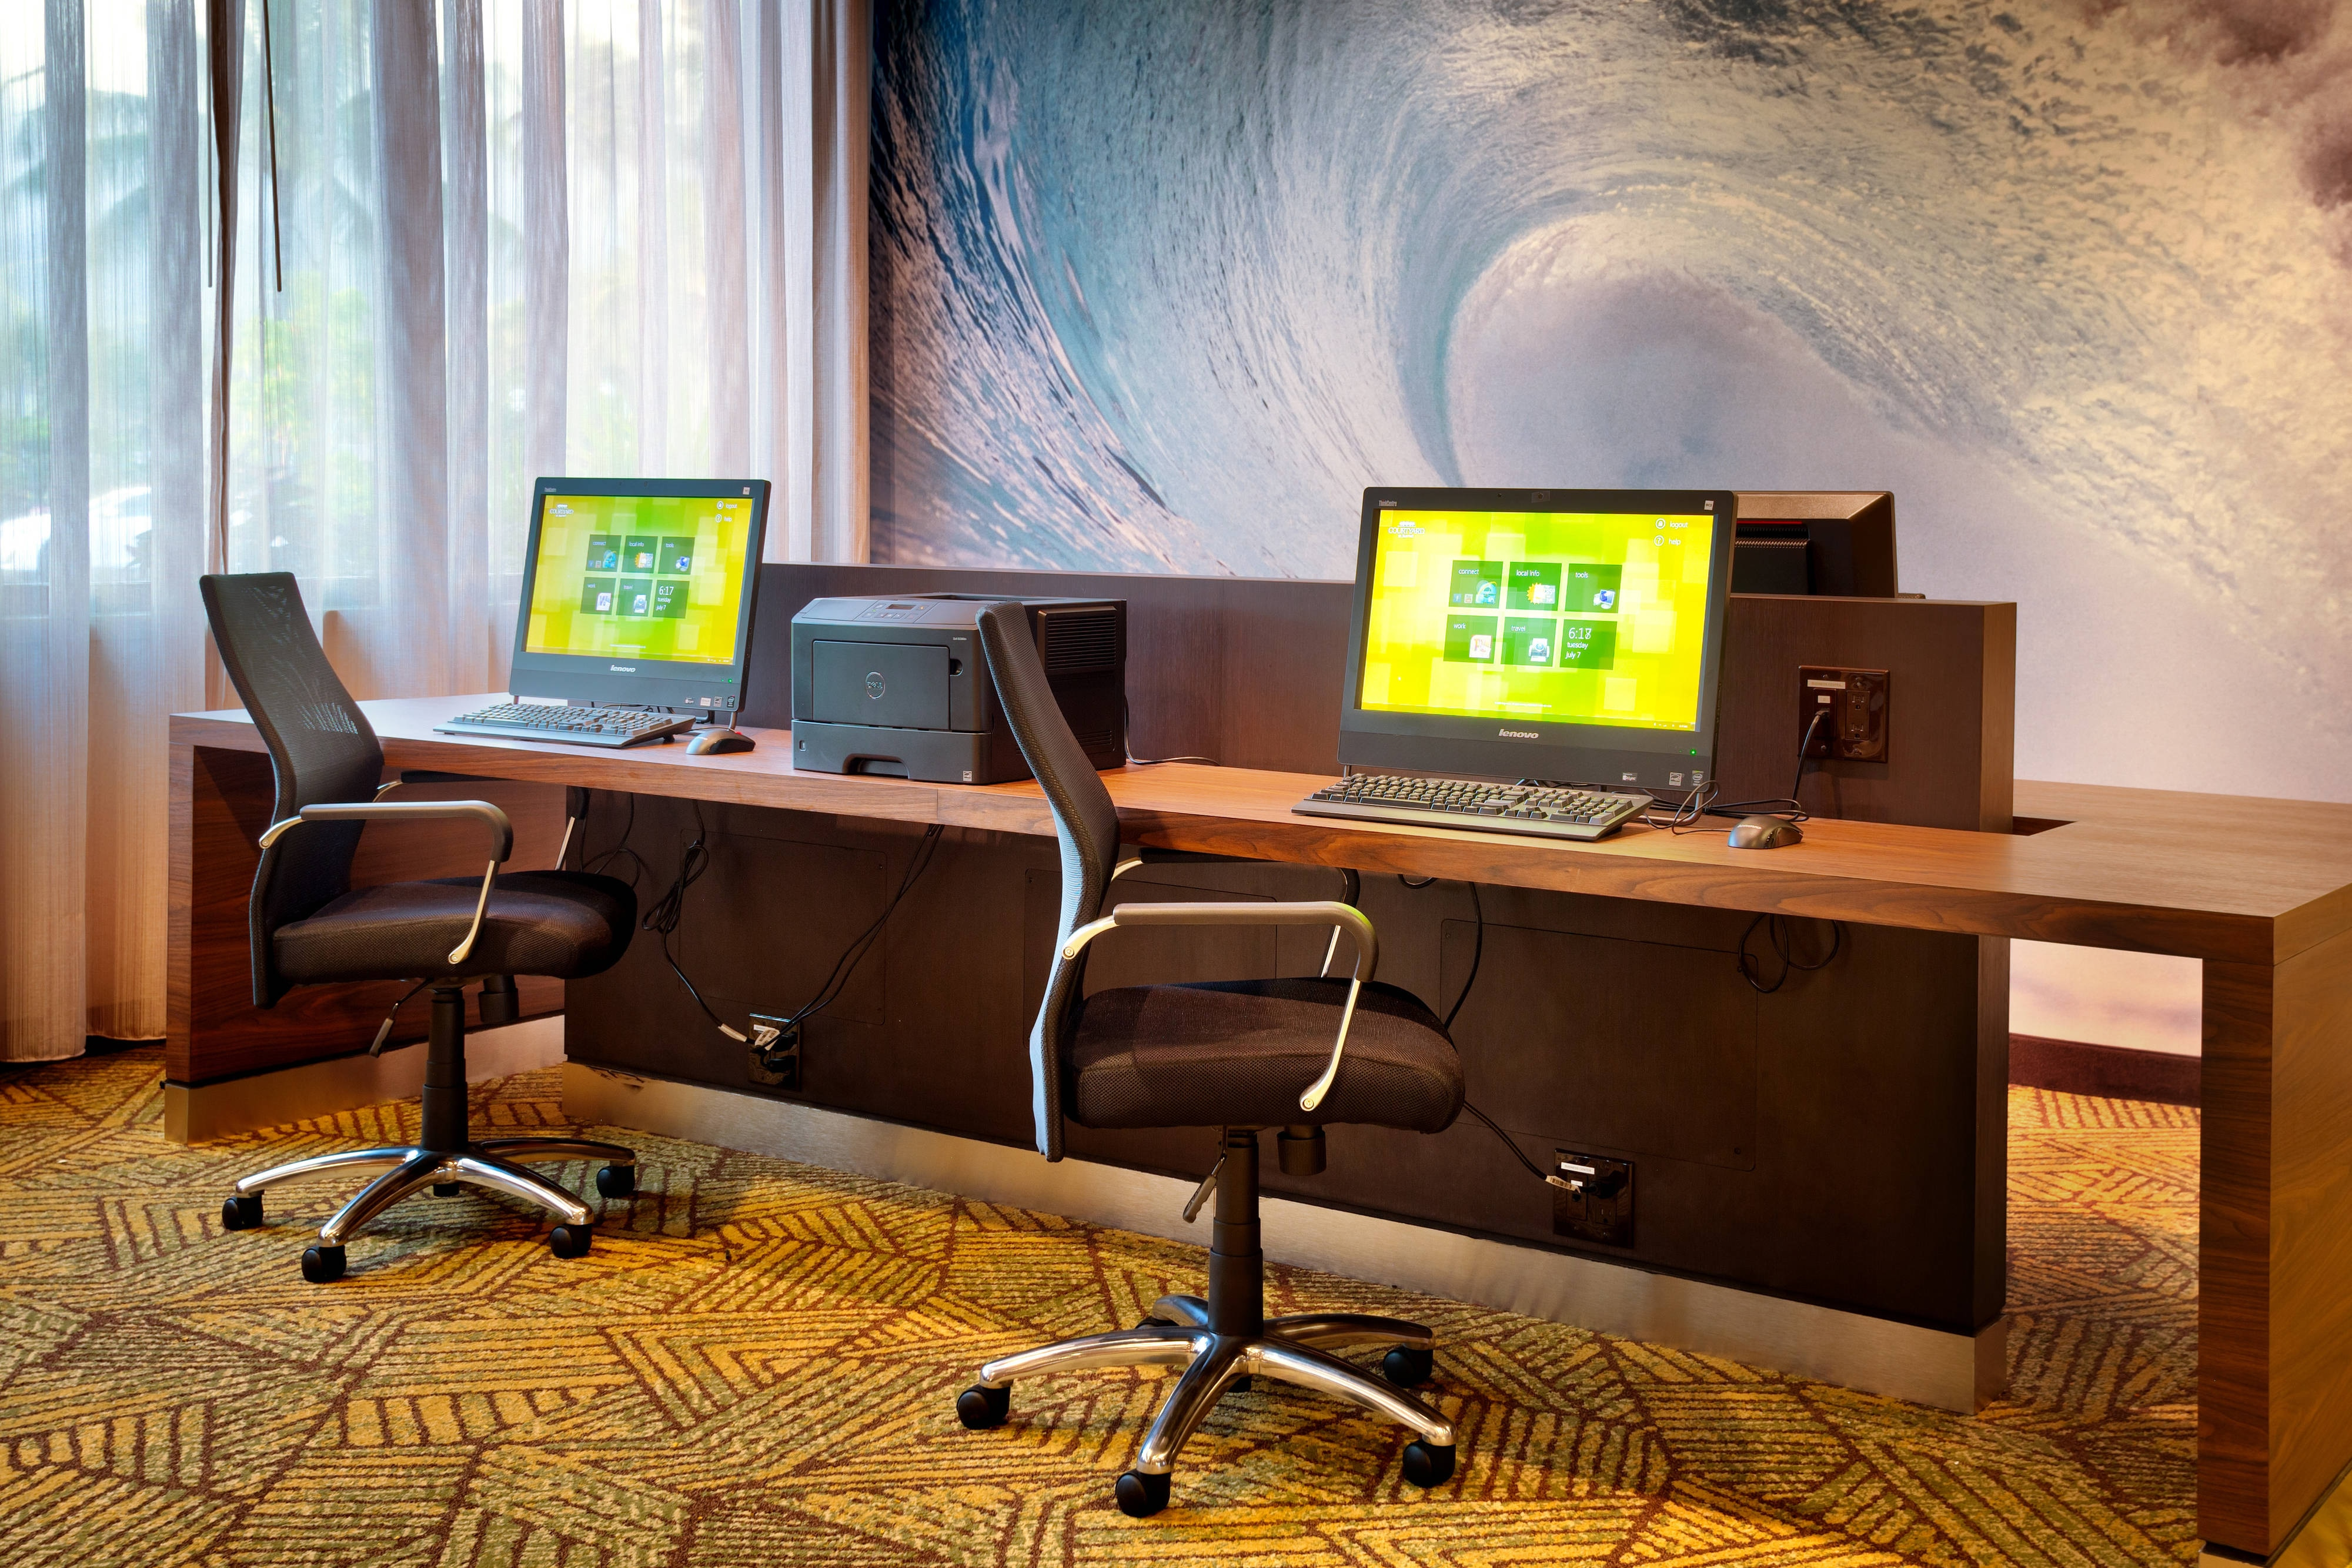 Oahu hotel business center